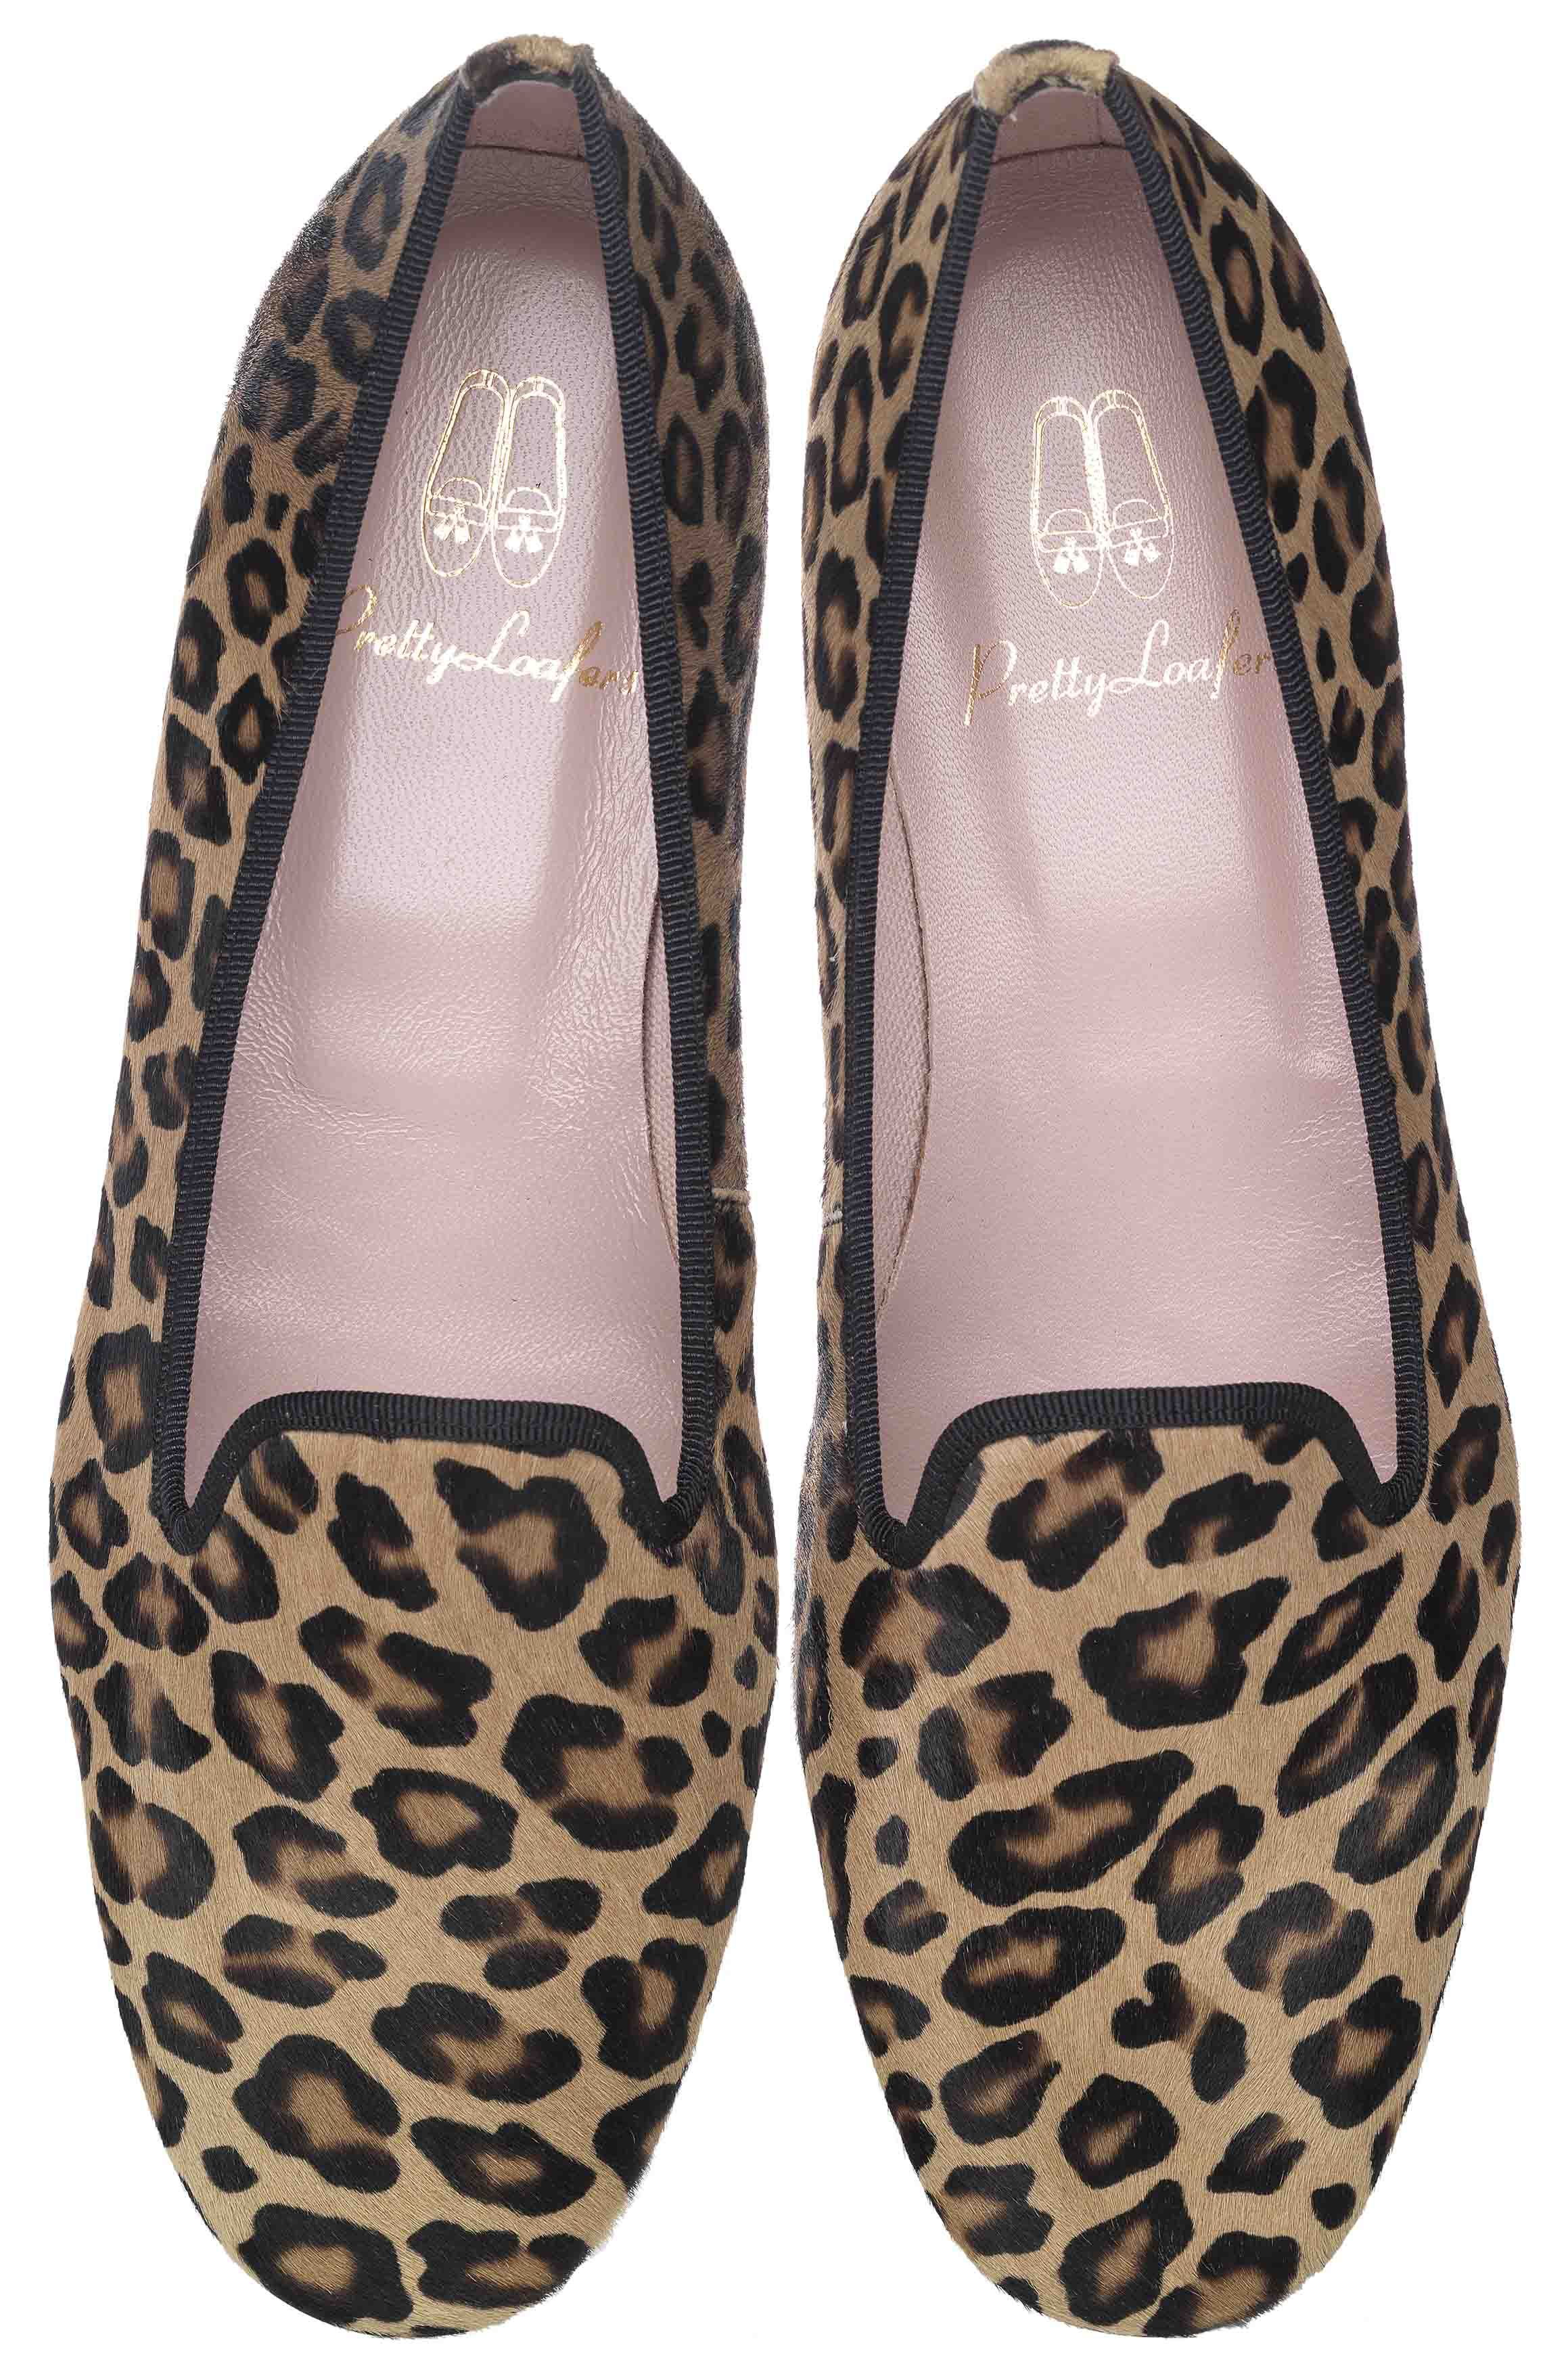 Pretty Loafers. Pretty Loafers & Pretty Ballerinas. FAYE. Poni estampado leopardo con falla negra. #ANIMALPRINT. Copete al estilo #slipper. #shoes #prettyballerinas #prettyloafers #pretty